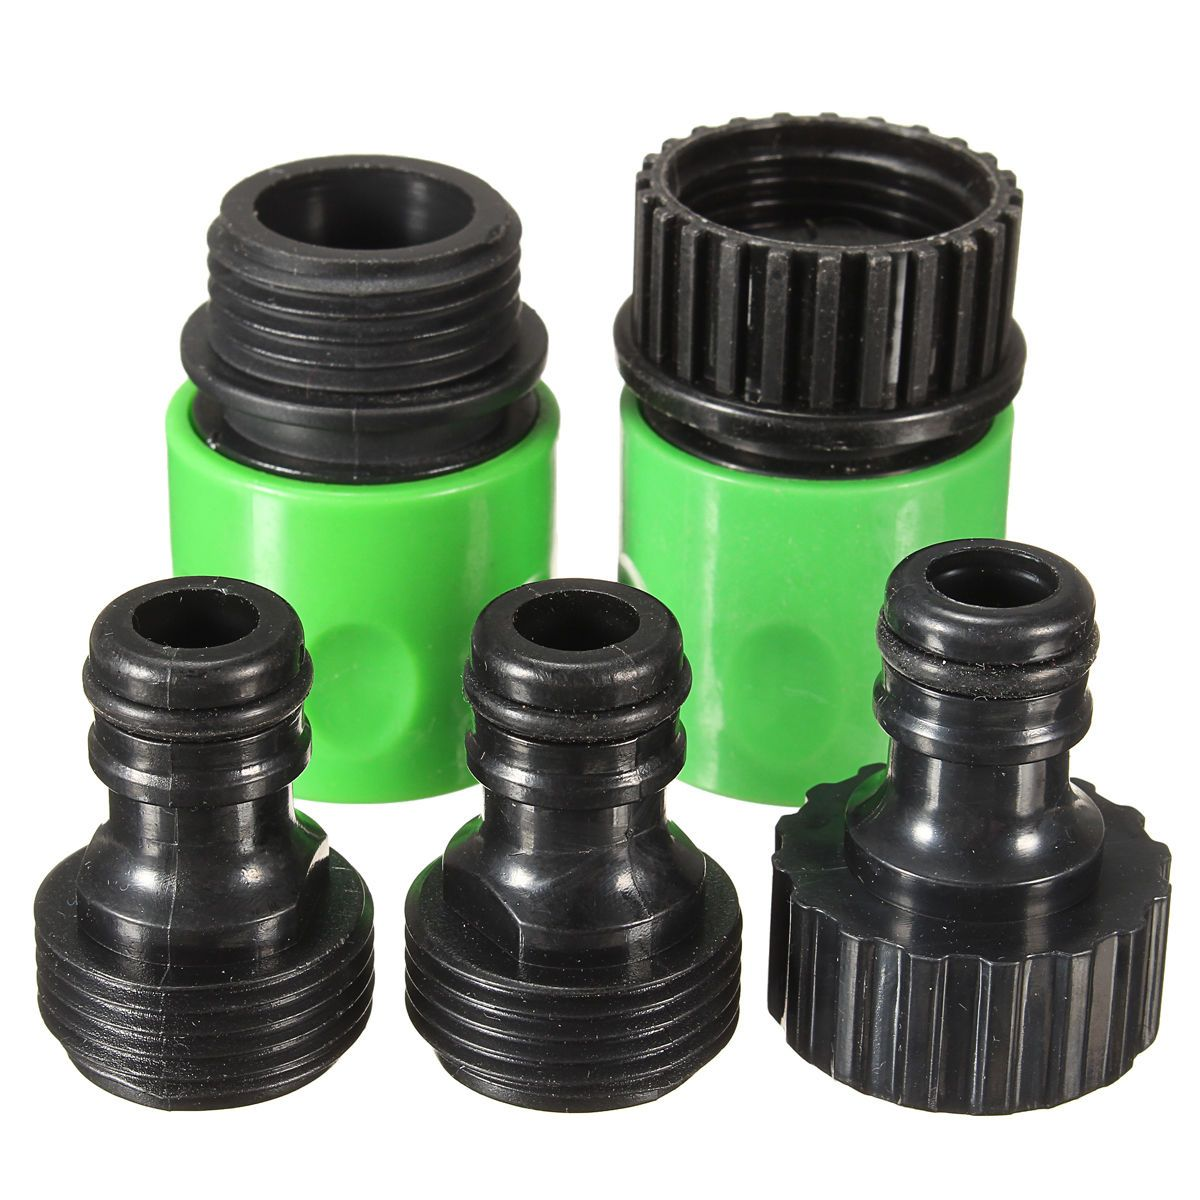 Mayitr 5Pcs Garden irrigation Water Hose Pipe Joint Rubber Hose ...